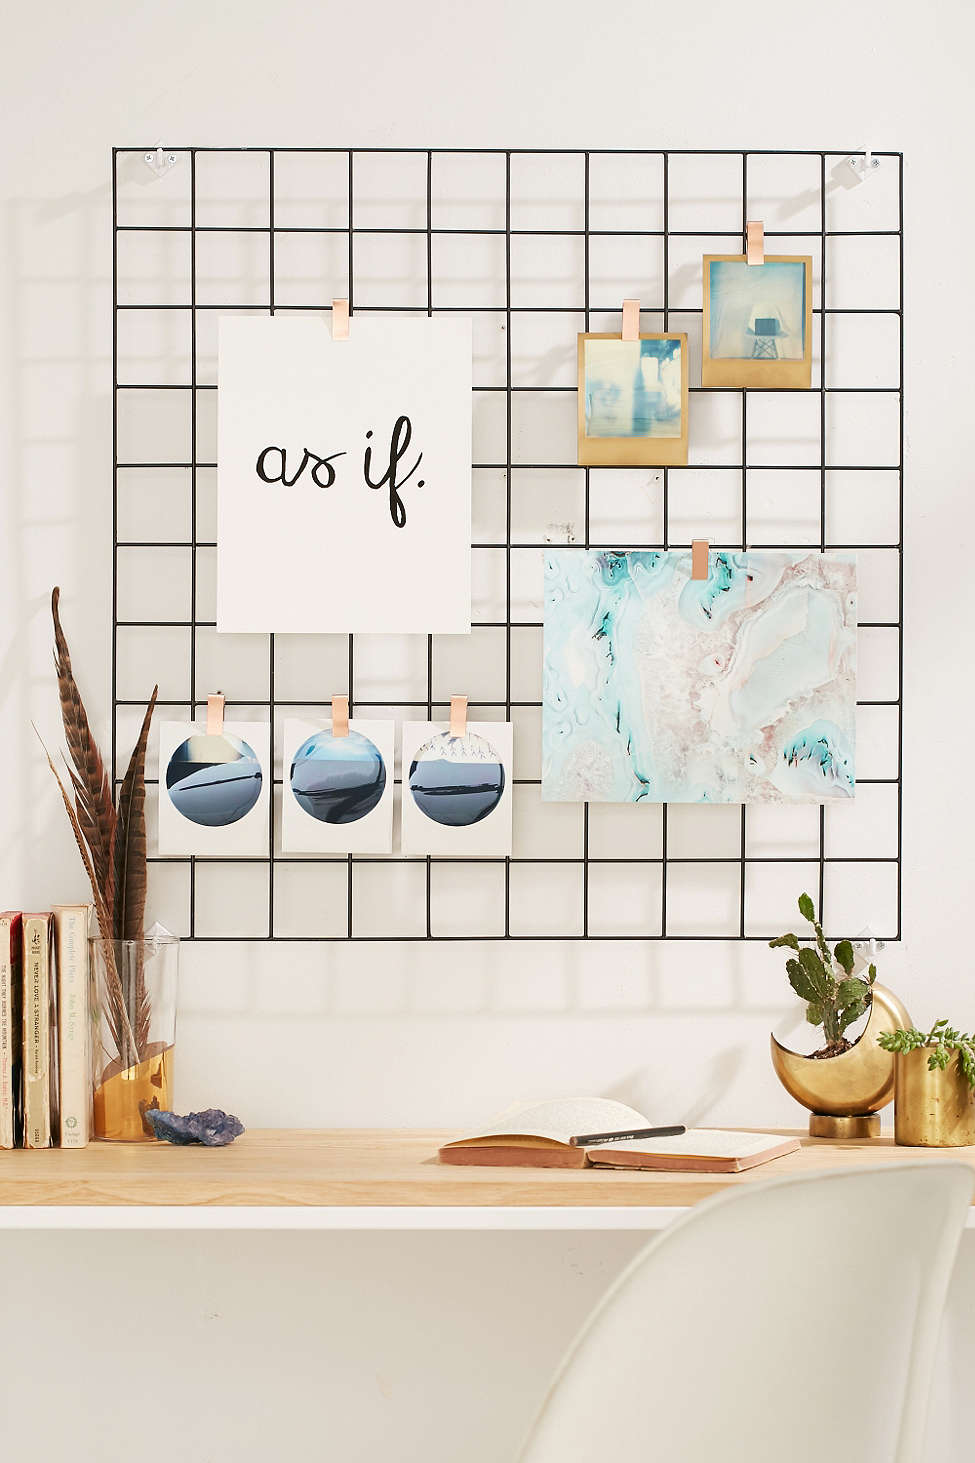 Decorative Items To Upgrade Your Room For Back To School